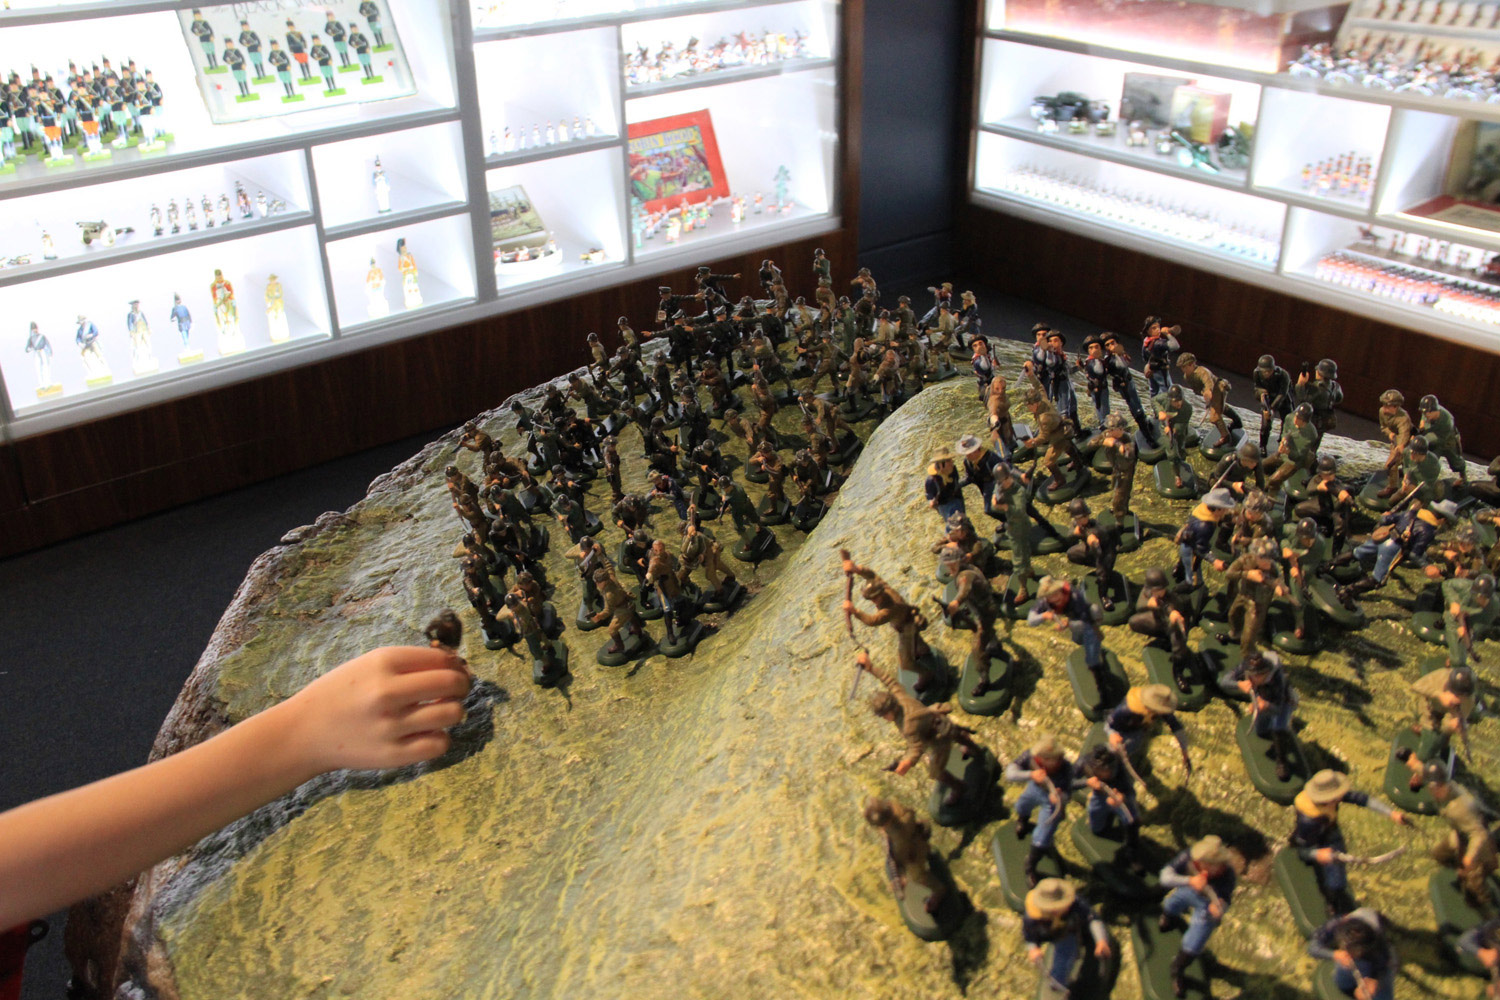 Detail of the terrain table and soldiers in The Charles Stewart Gallery for all to play with.